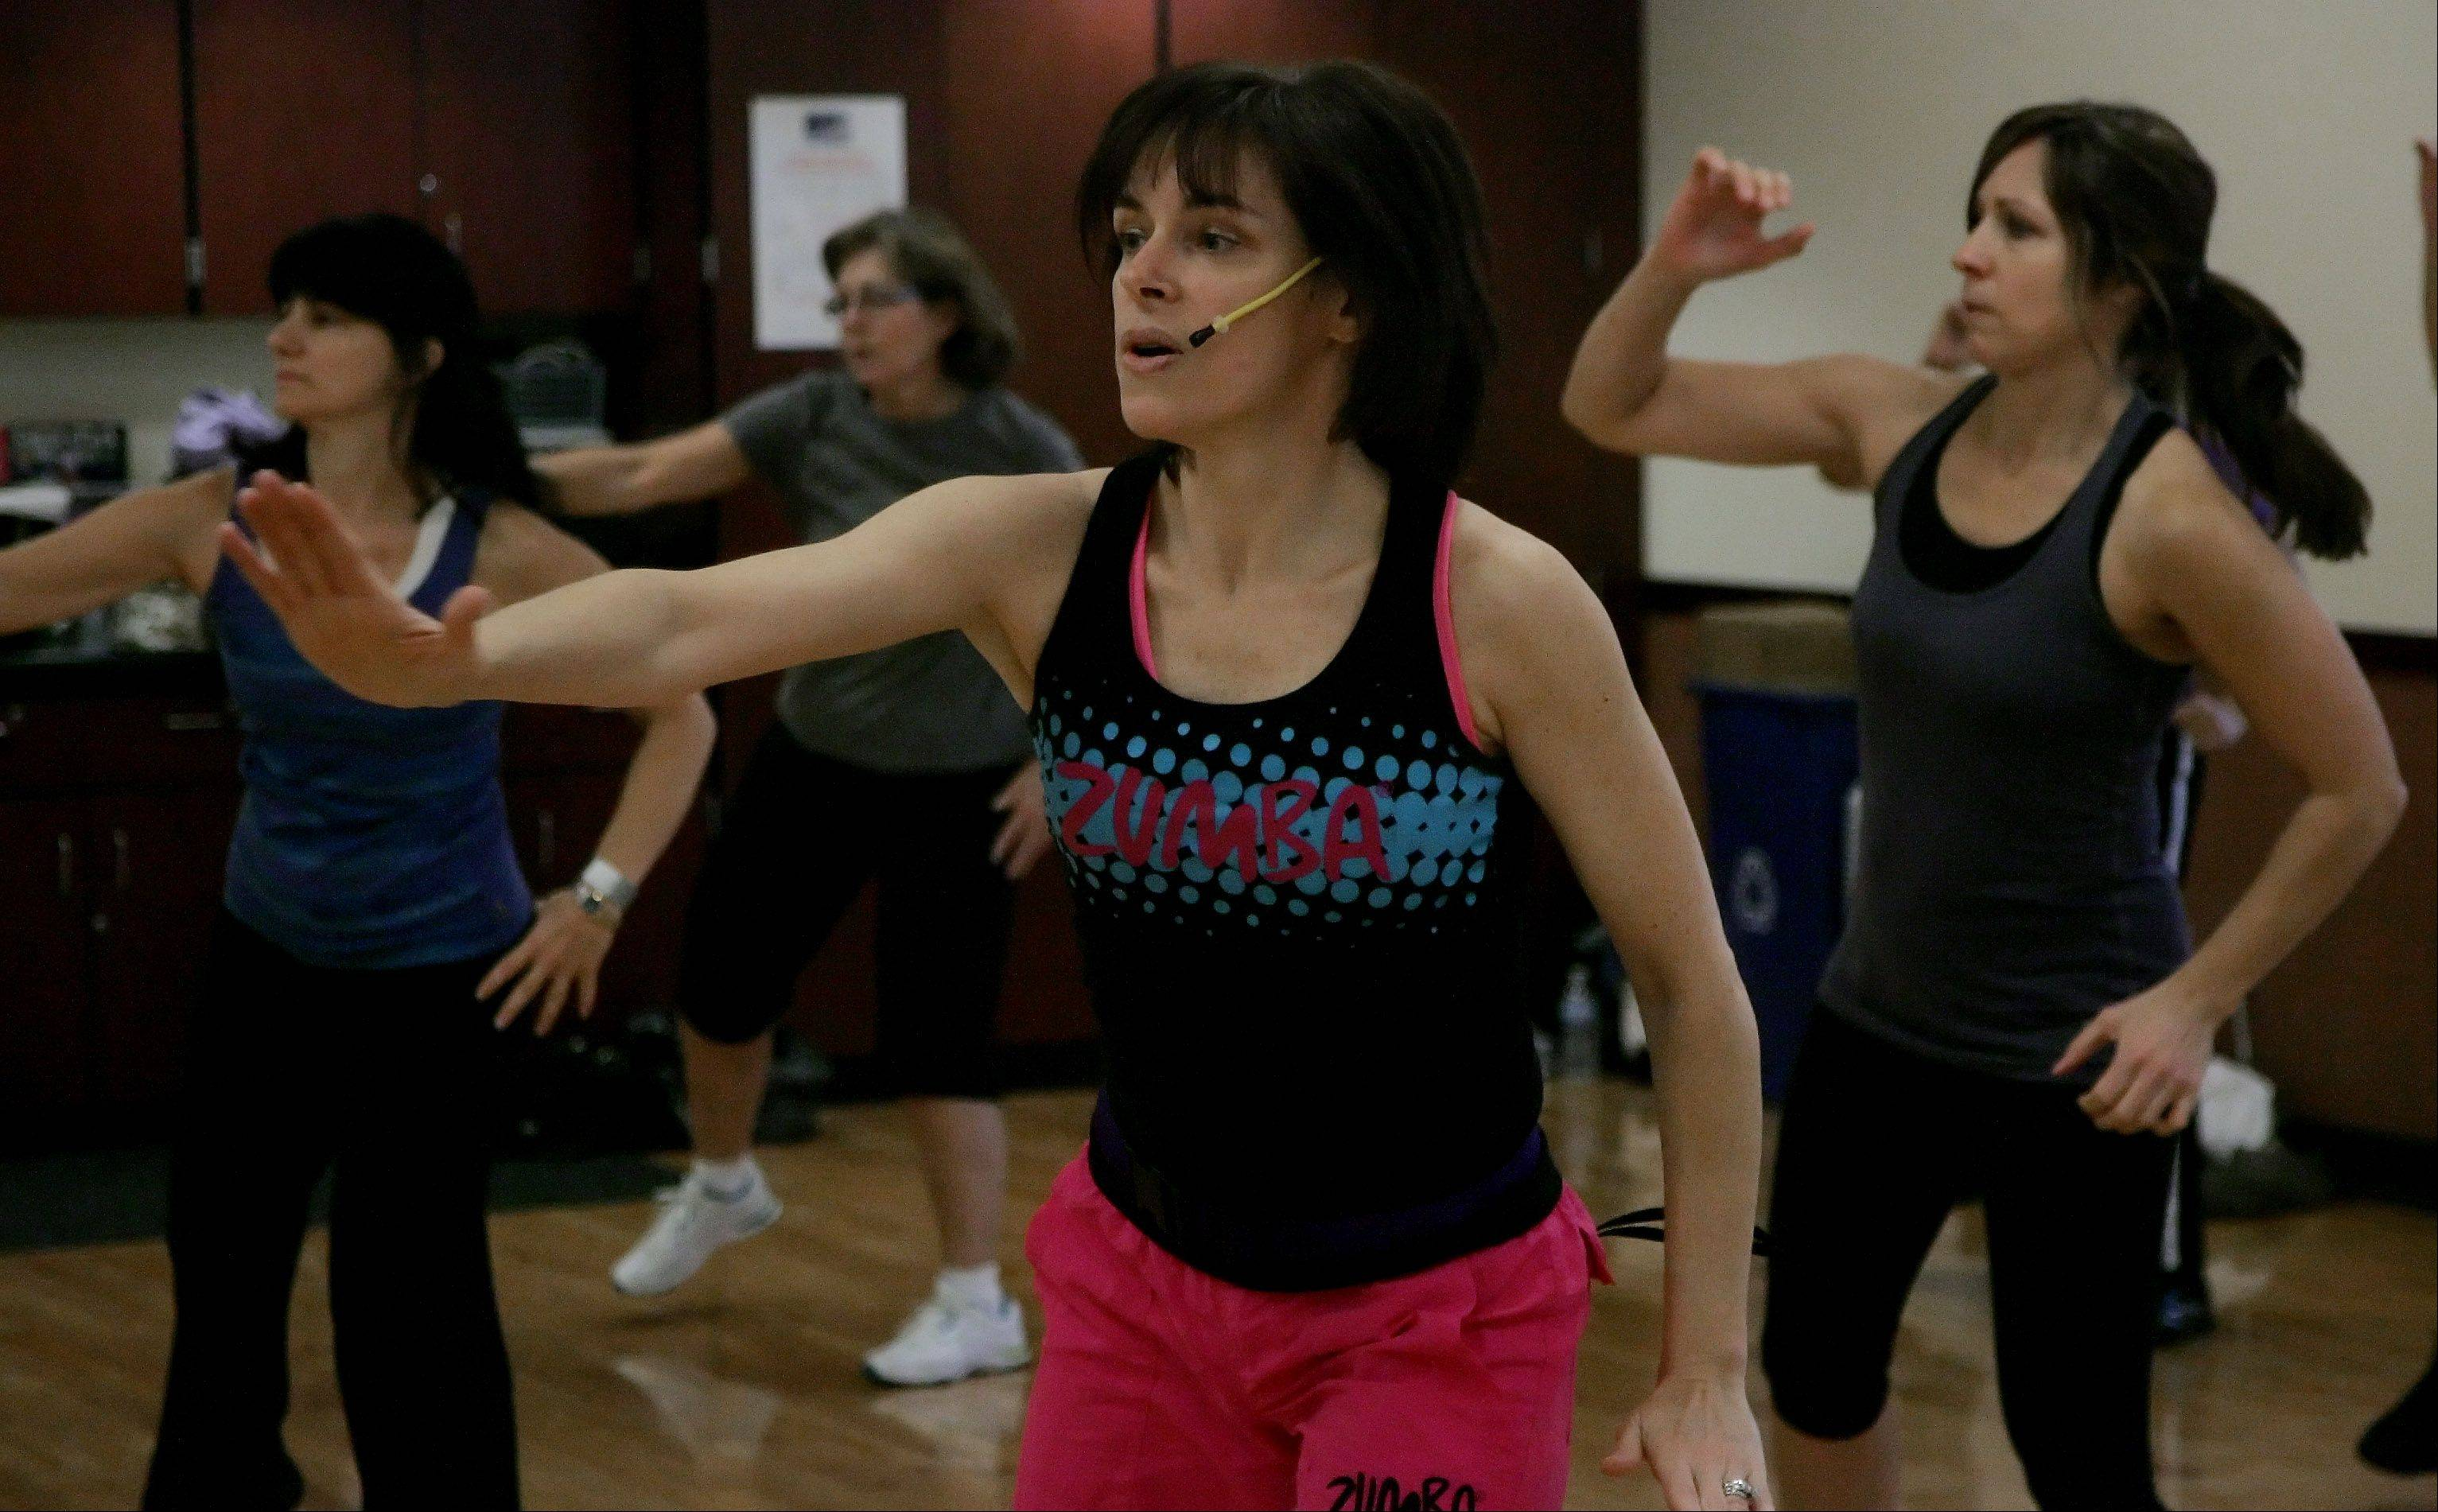 Instructor Carol Specht leads a Zumba class at the Hunt Club Park Fitness Center in Gurnee. The Gurnee Park District offered discounts for their fitness classes online through Groupon's daily deals.